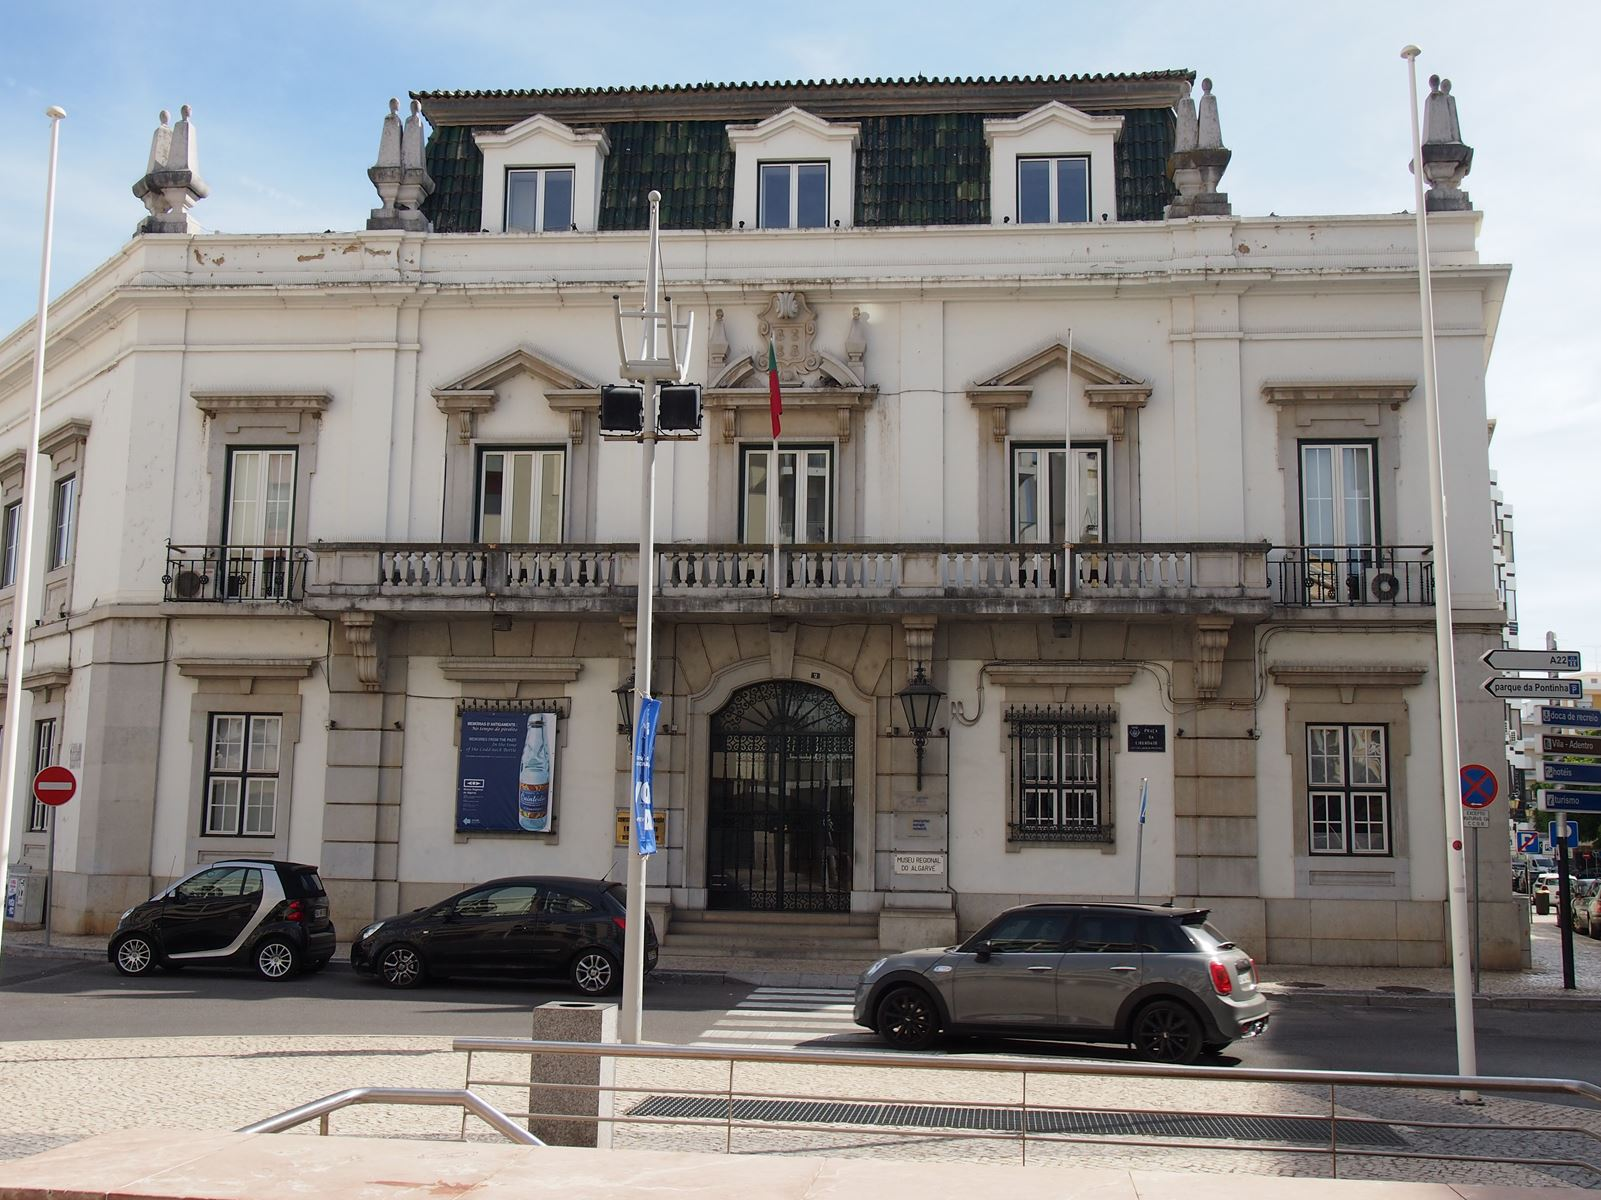 Museu Regional do Algarve (Regional Museum of the Algarve), Faro